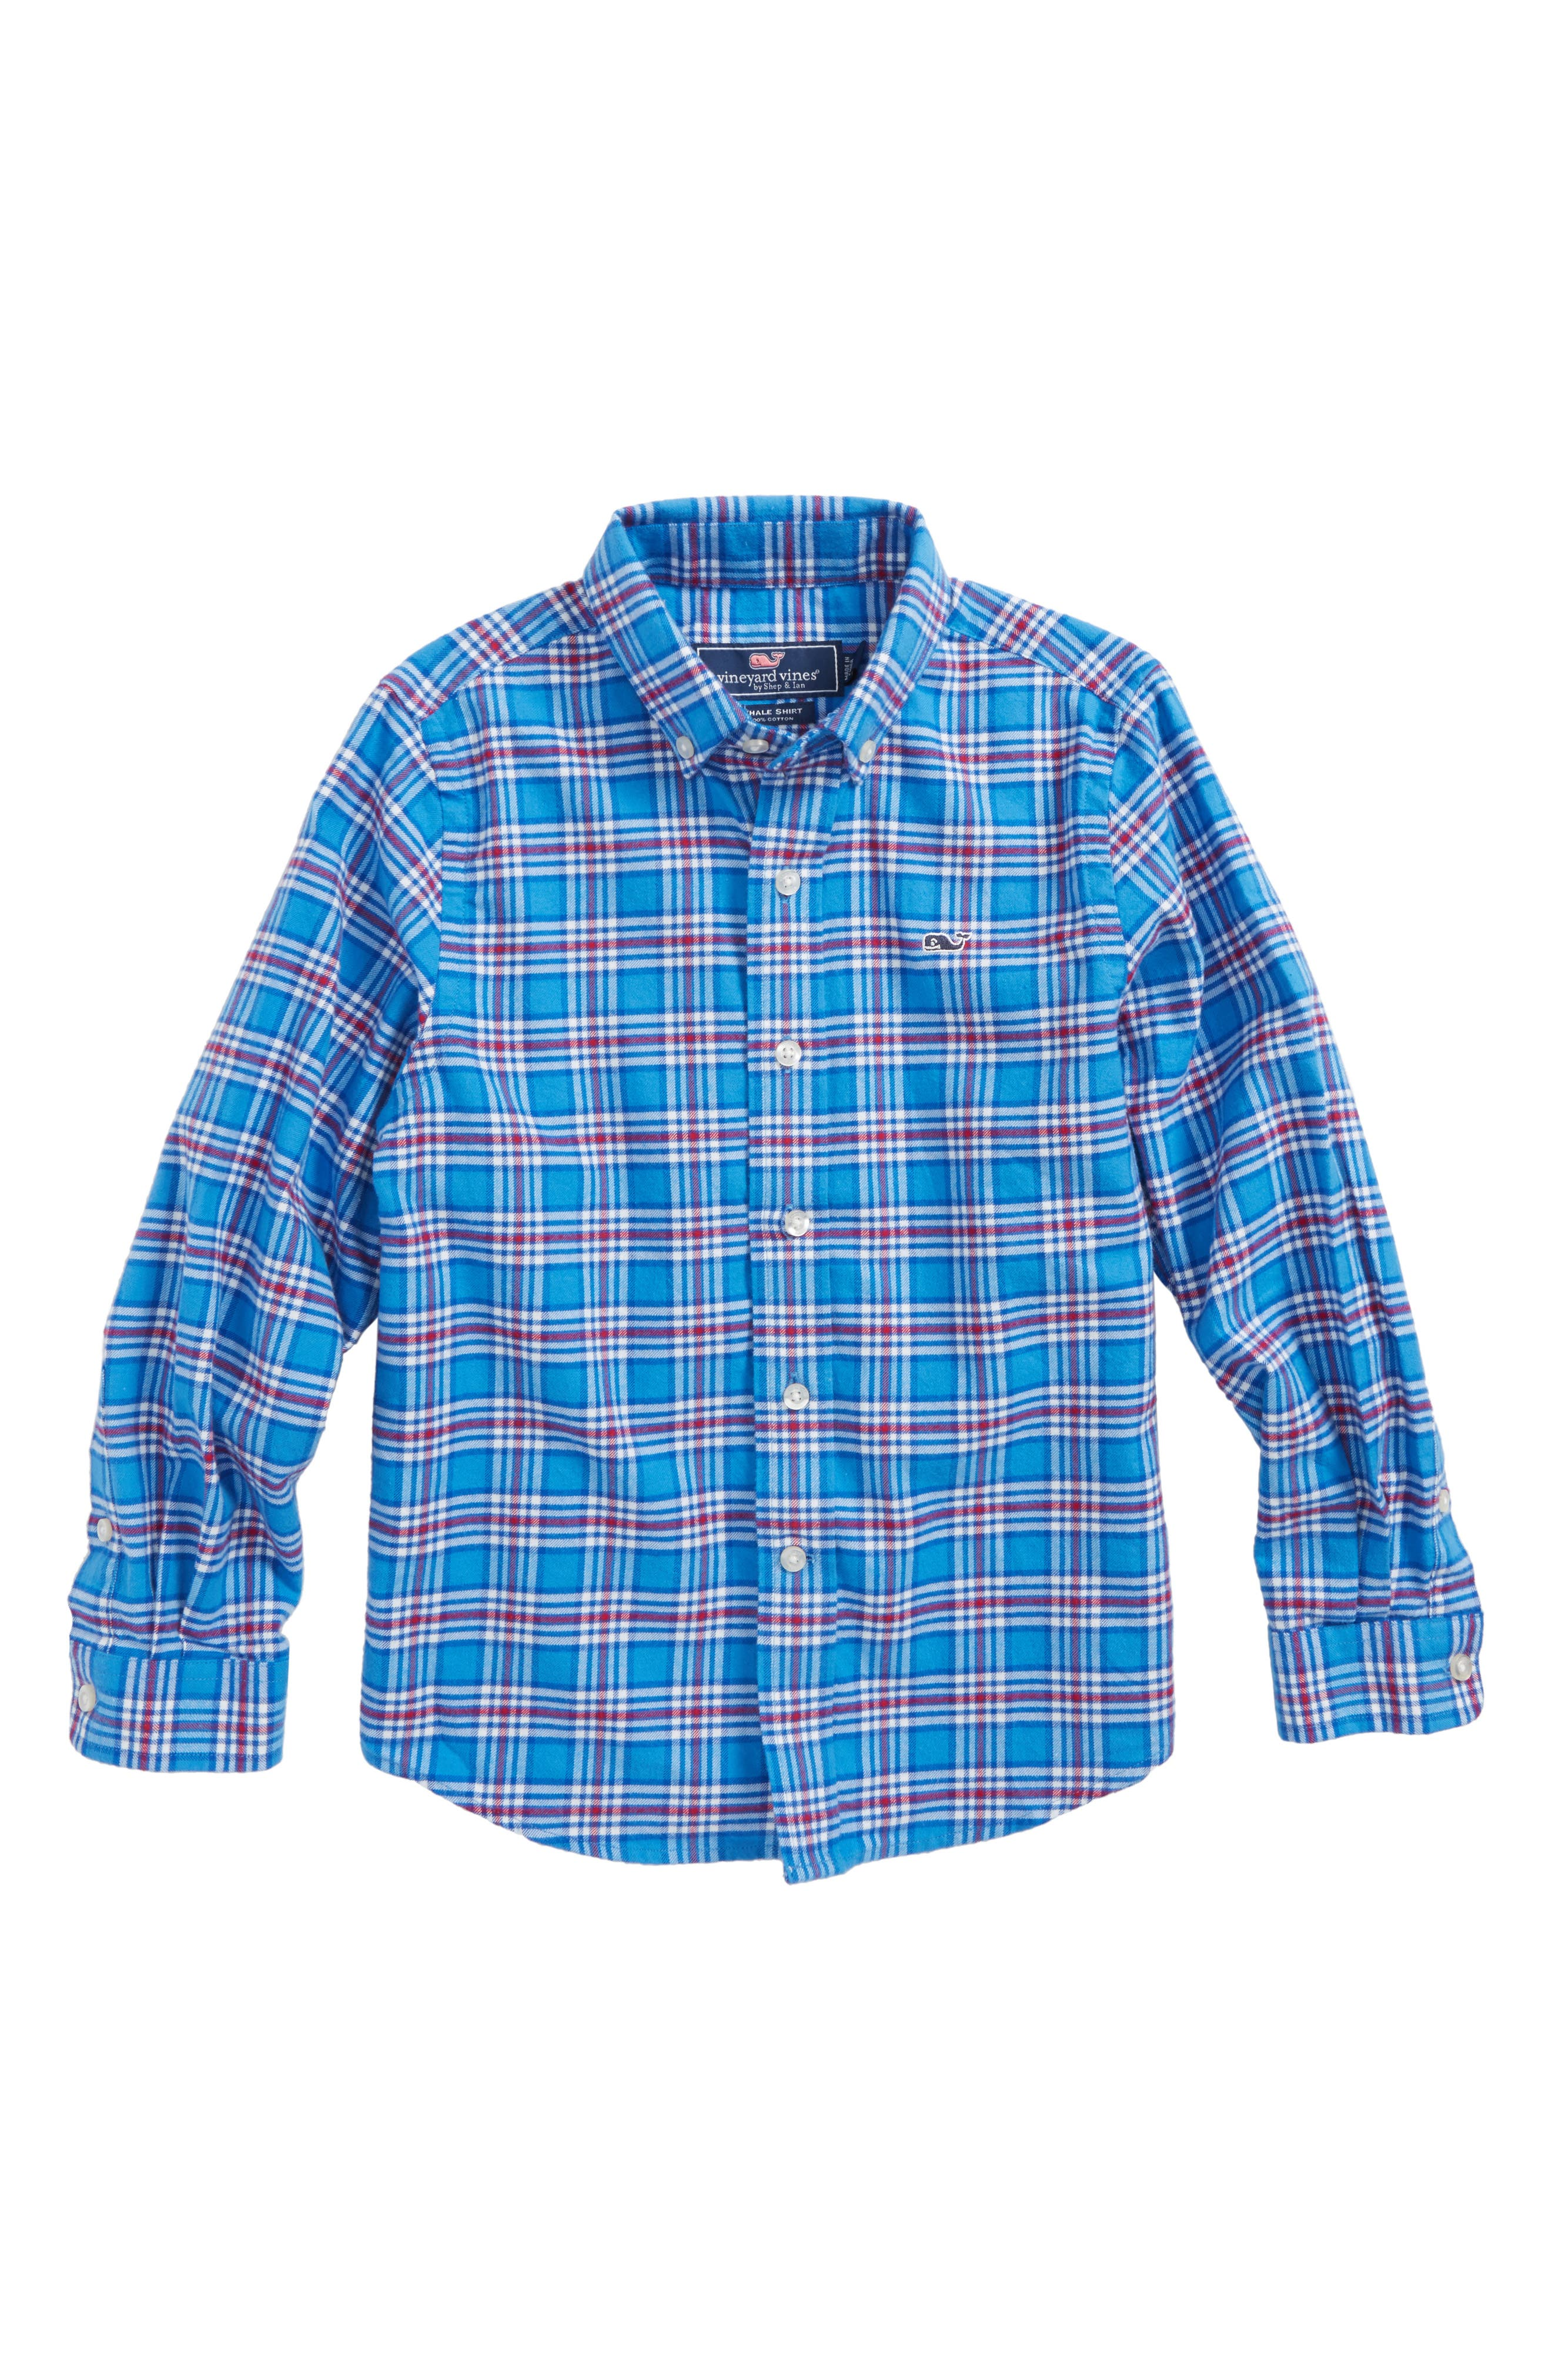 Chandler Pond Plaid Flannel Shirt,                             Main thumbnail 1, color,                             Hull Blue